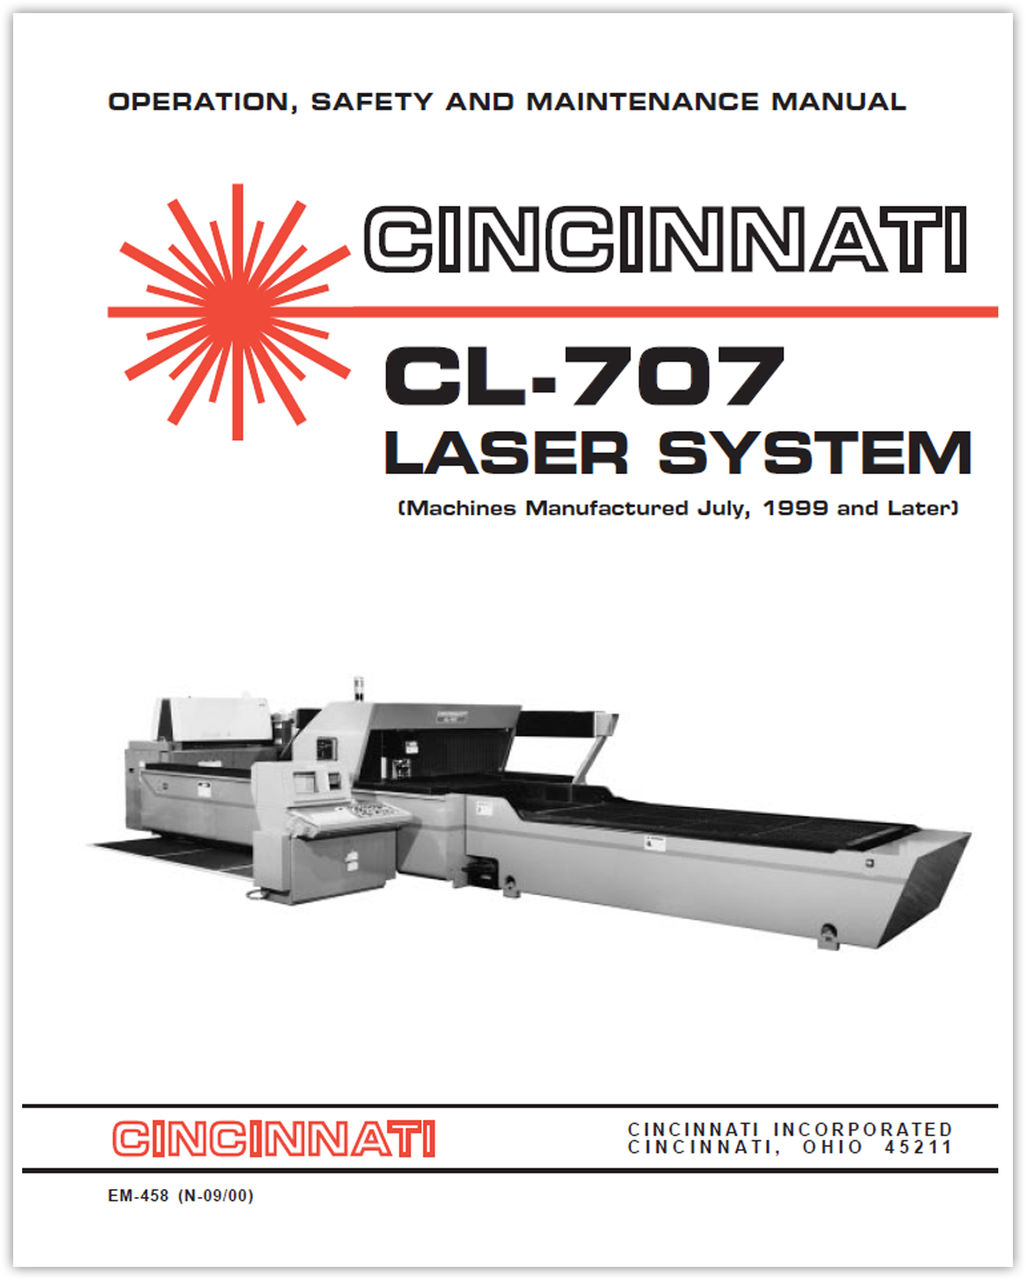 EM-458 (N-09-00) CL-707 Laser System - Operation, Safety and Maintenance Manual (Machines Manufactured July, 1999 and Later)